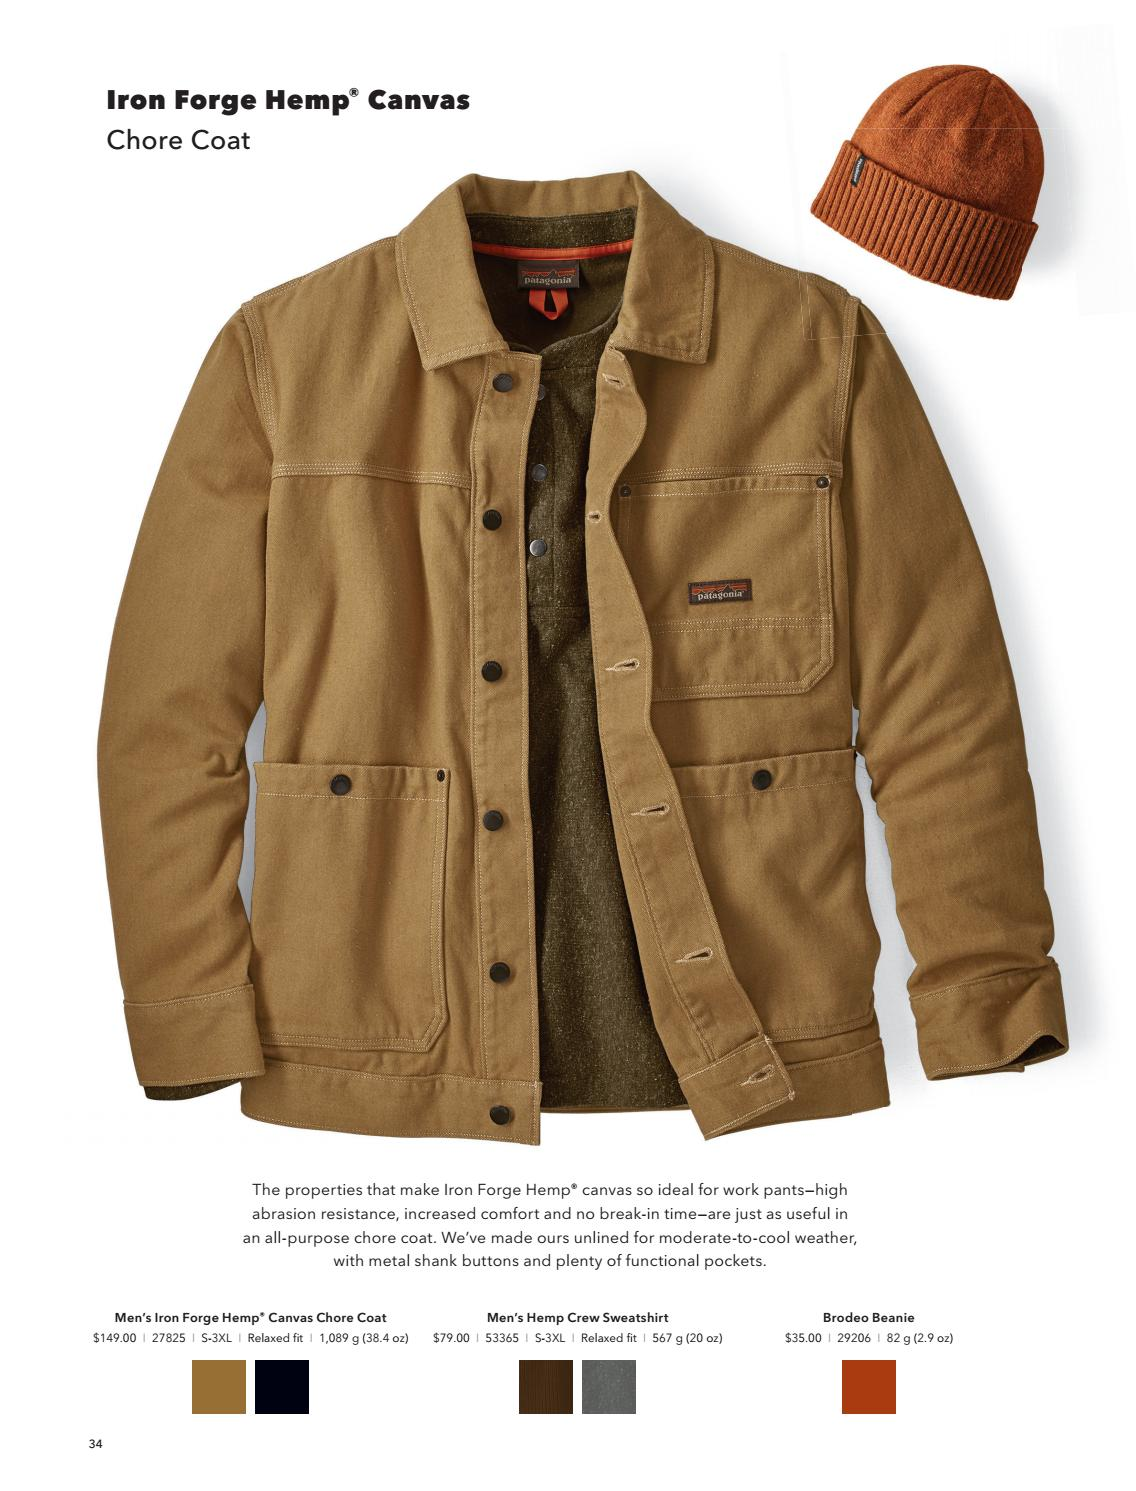 db0139bfae691 Patagonia October Workwear Gear Guide 2018 by Patagonia - The ...